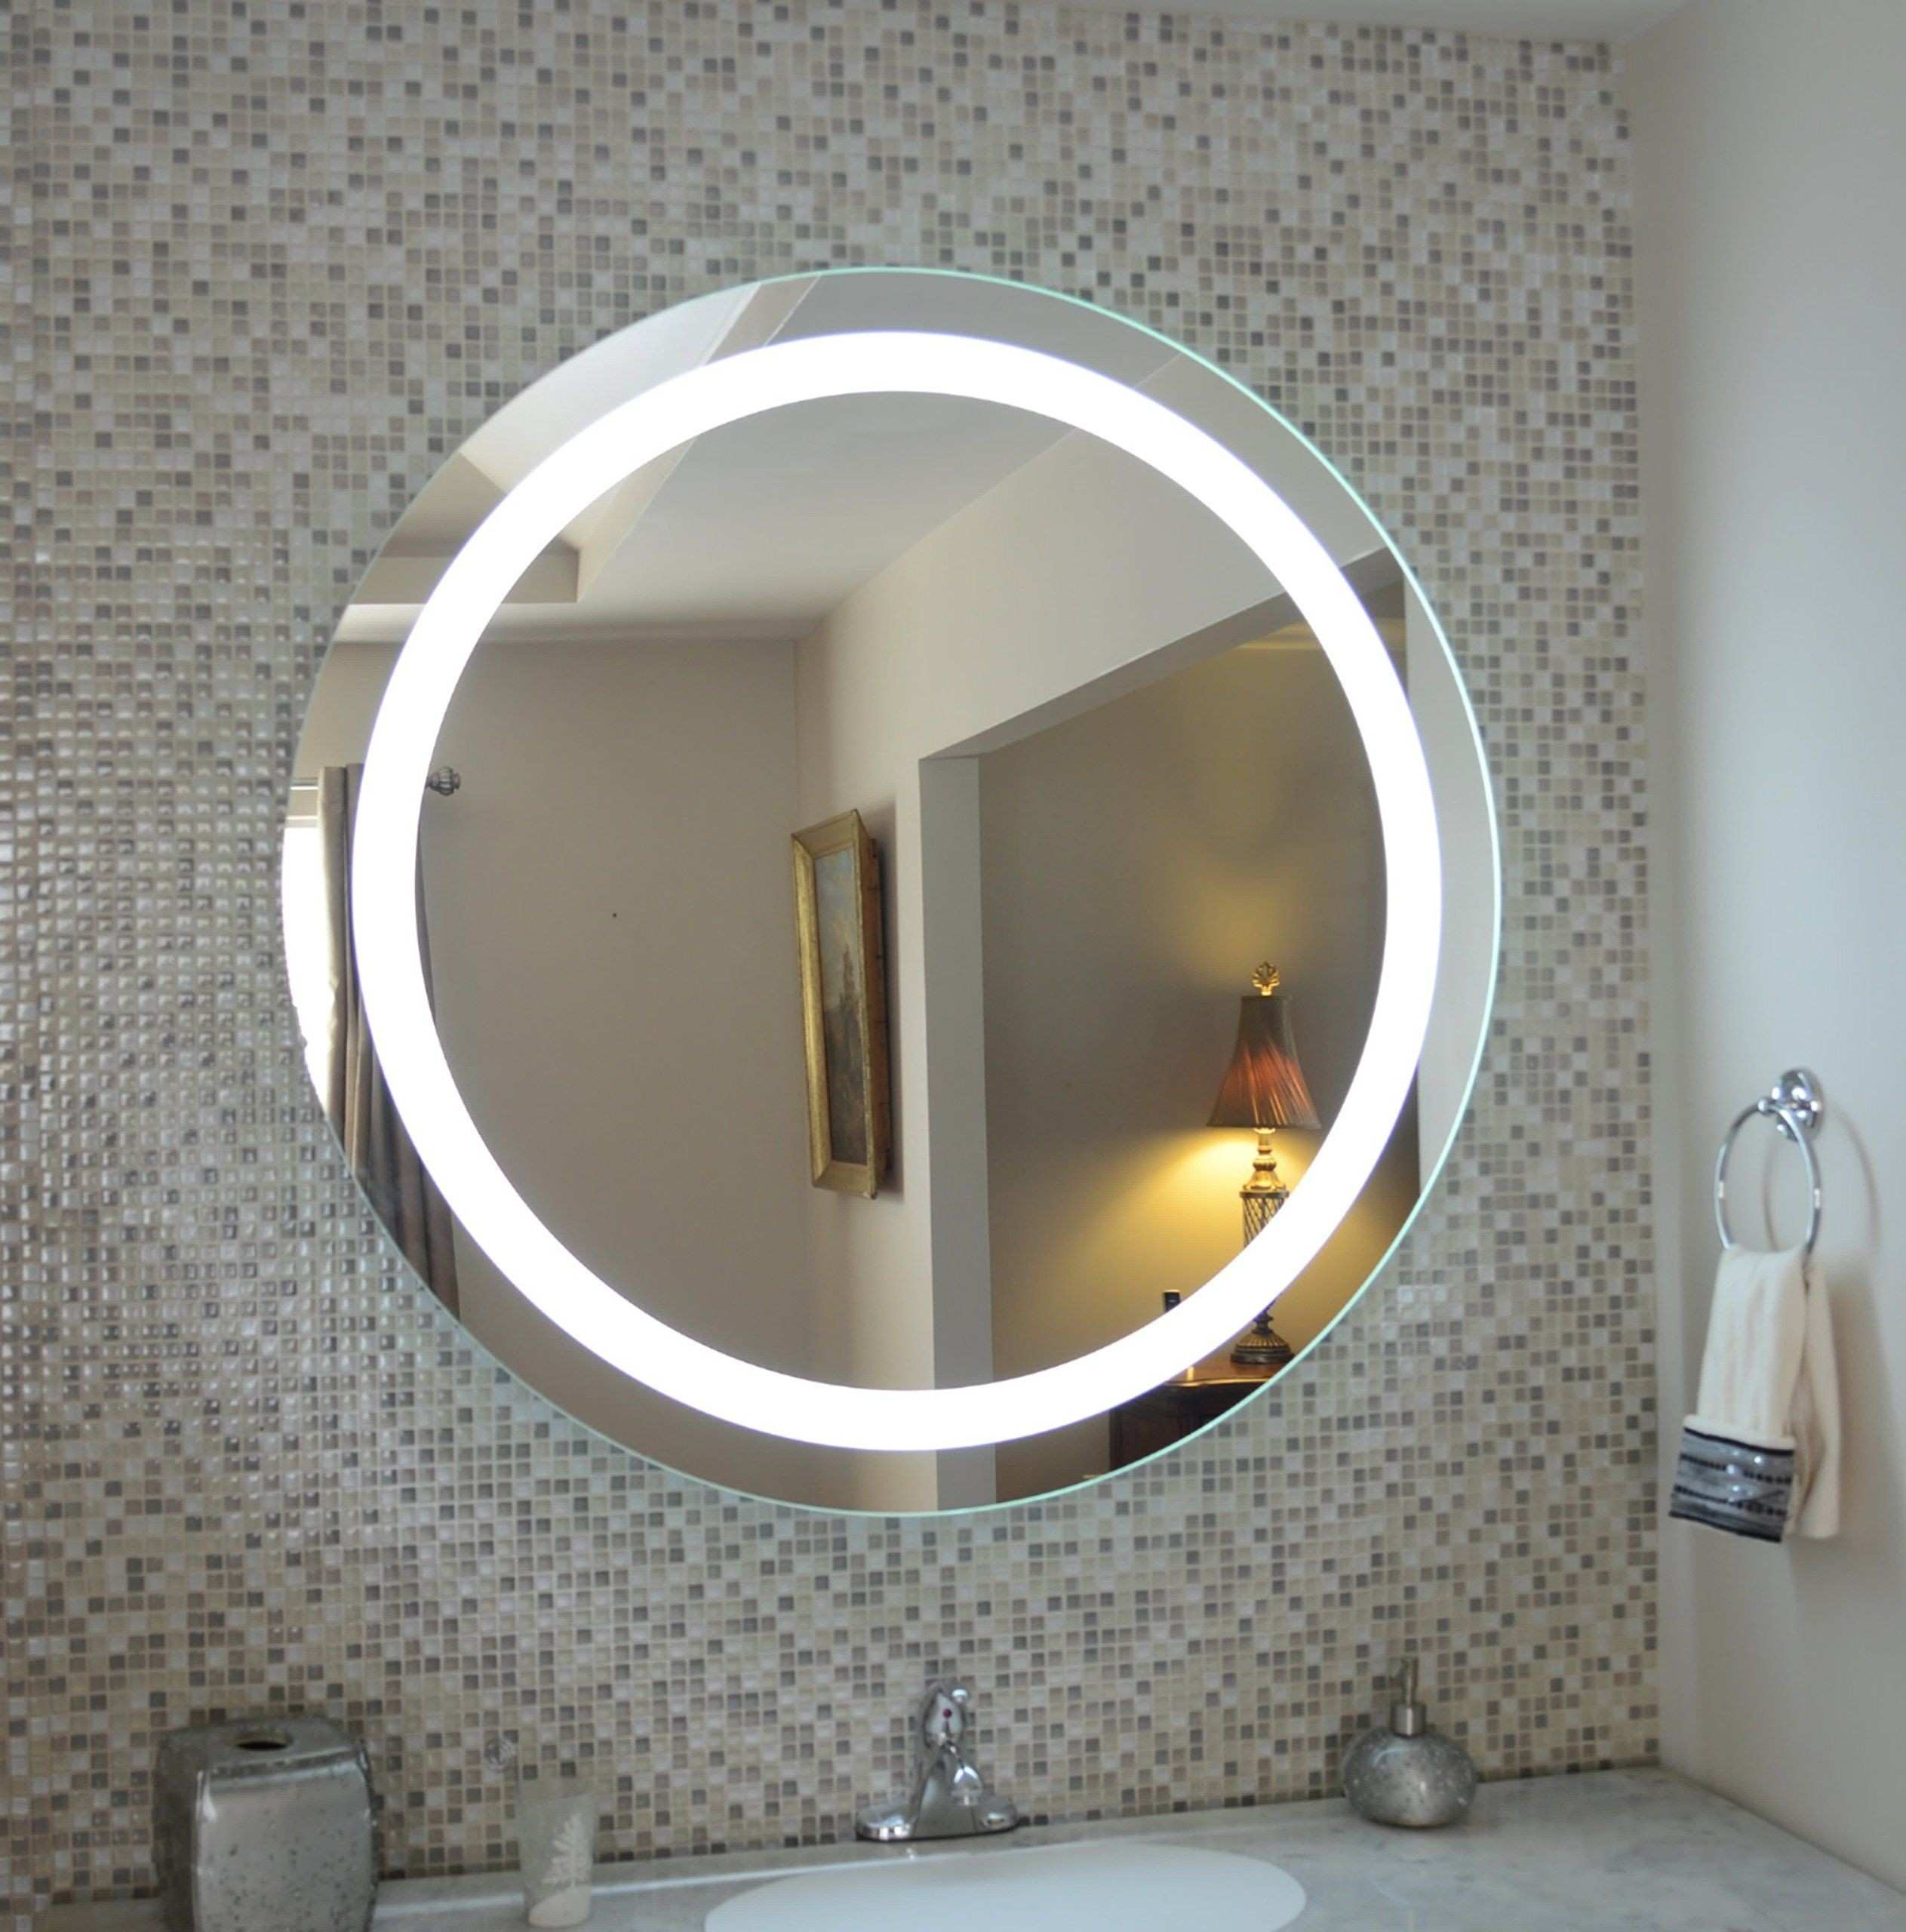 Decorative Round Mirrors For Walls Fresh Wall Mounted Lighted Vanity Mirror Led Mam1d40 Mercial Grade 40